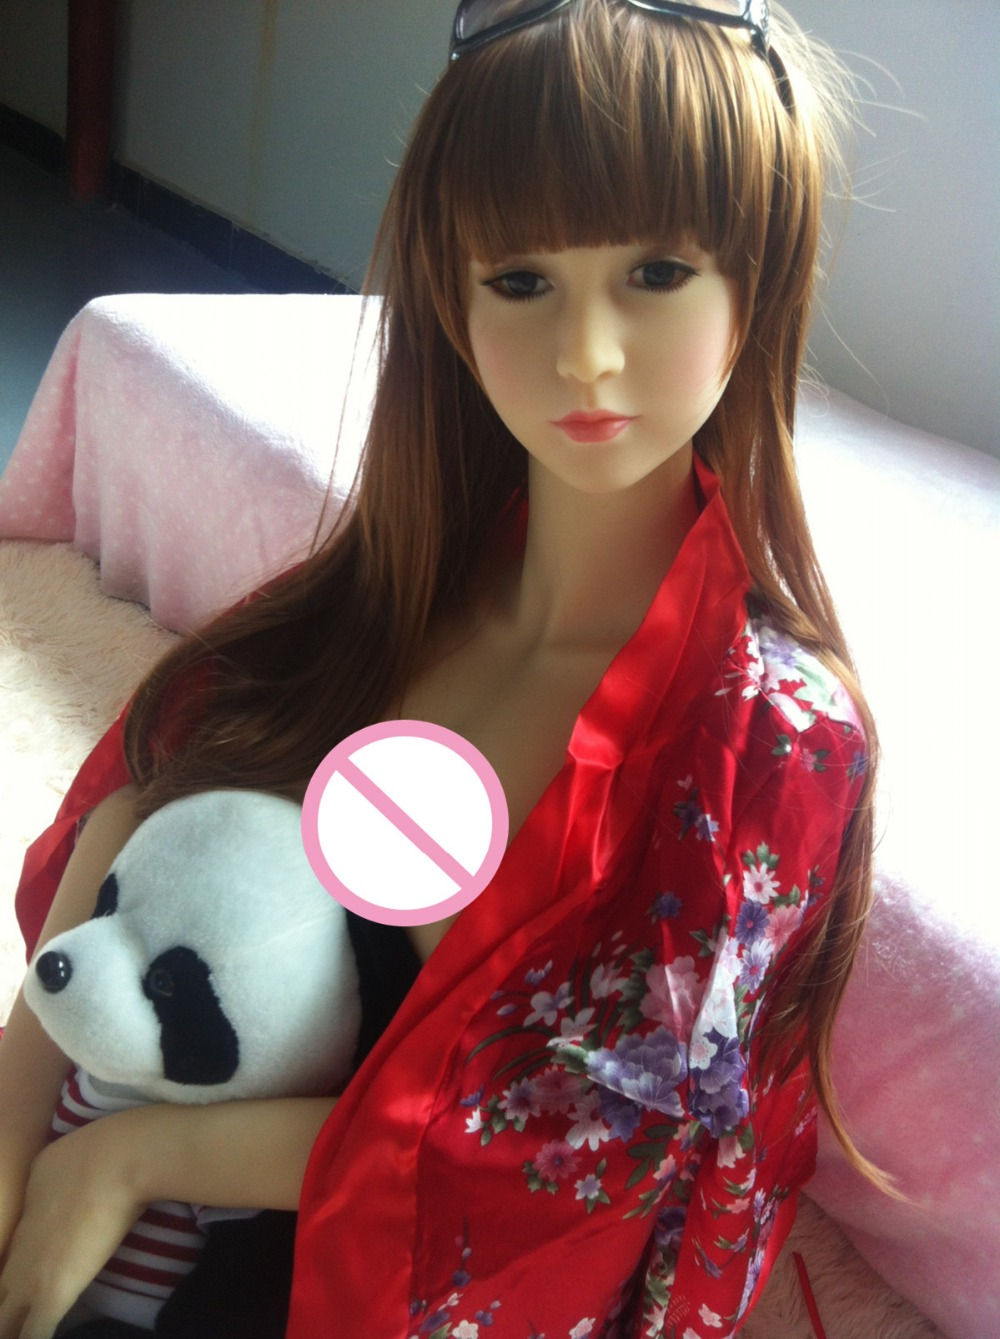 Buy TPE silicone sex dolls 165cm lifelike Chinese  realistic sex dolls men sex products online shopping